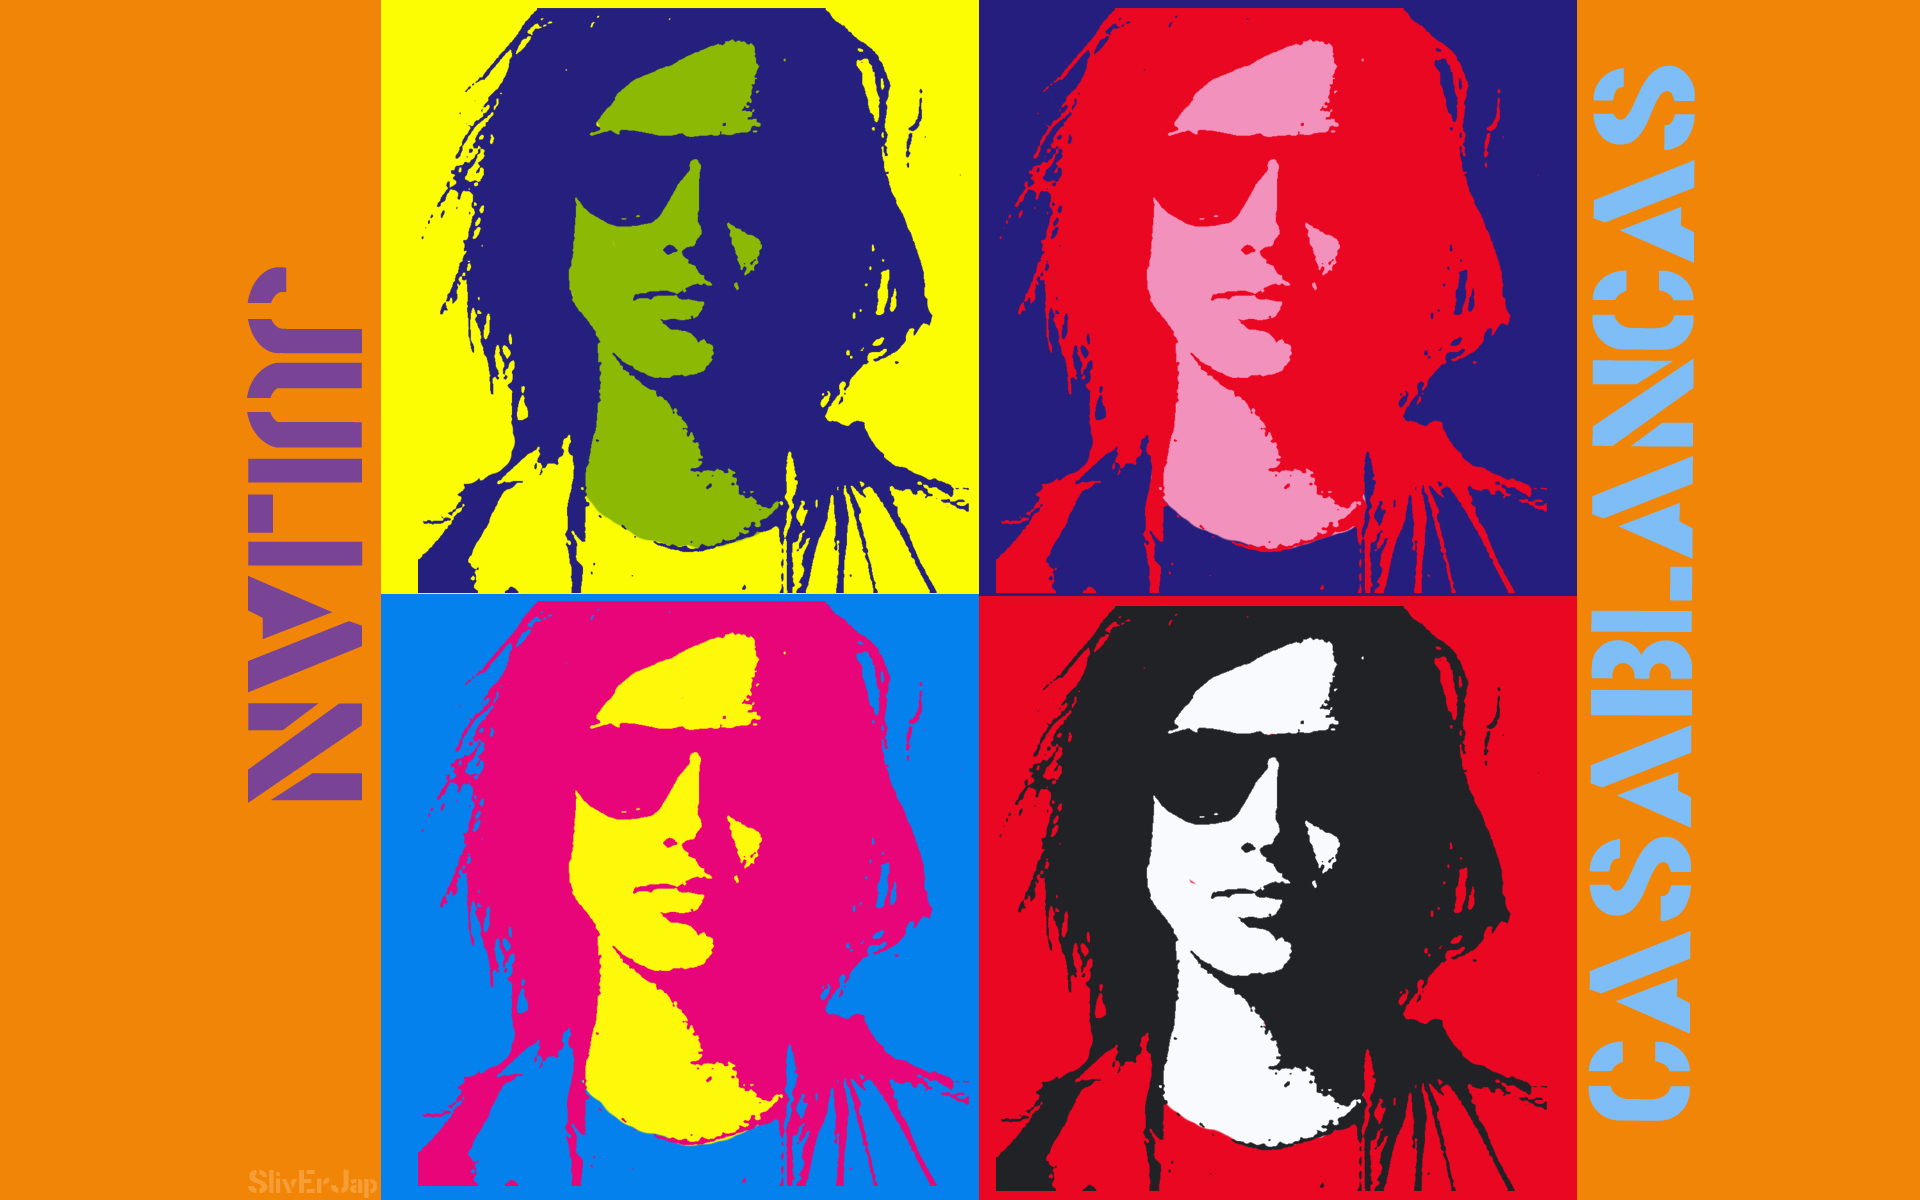 JULIAN CASABLANCAS - PHRAZES FOR THE YOUNG (PREVIEW) - YouTube